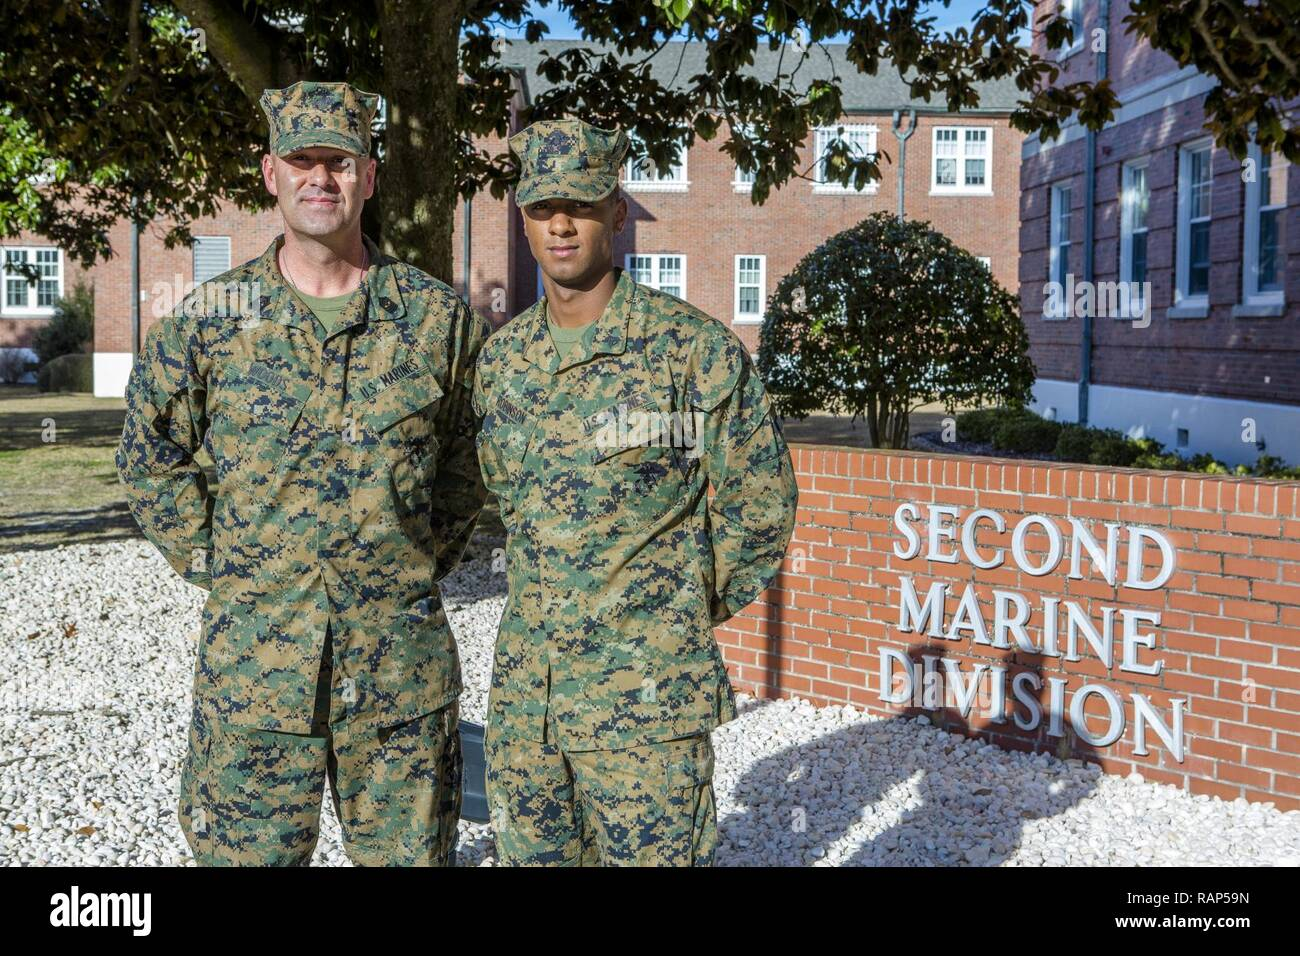 U.S. Marine Corps Sgt. Maj. Michael P. Woods, sergeant major, 2nd Marine Division (2d MARDIV), stands with Cpl. Demarcus R. Robinson, 2d MARDIV, following a morning colors ceremony on Camp Lejeune, N.C., Feb. 22, 2017. During this ceremony Maj. Gen. John K. Love, commanding general, 2d MARDIV, recognized Marines and Sailors, within the 2d MARDIV, who set themselves apart from their peers during the previous quarter by demonstrating their leadership abilities, espirit de corps and their skill and will. Stock Photo